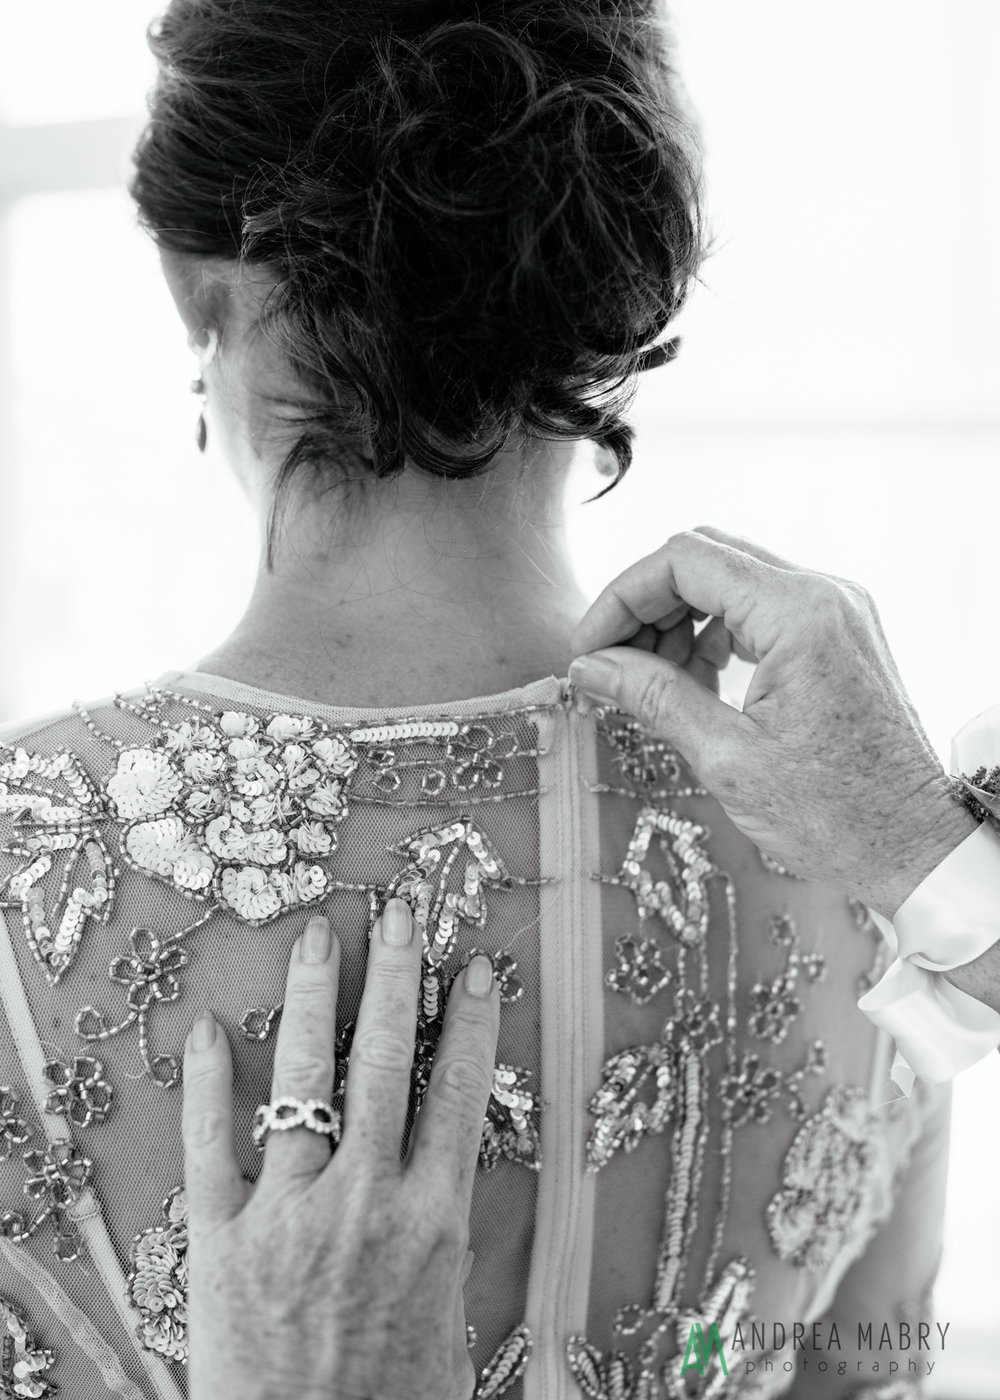 Bridal Preparation. Government Street Presbyterian Church Mobile Wedding. Andrea Mabry Photography.